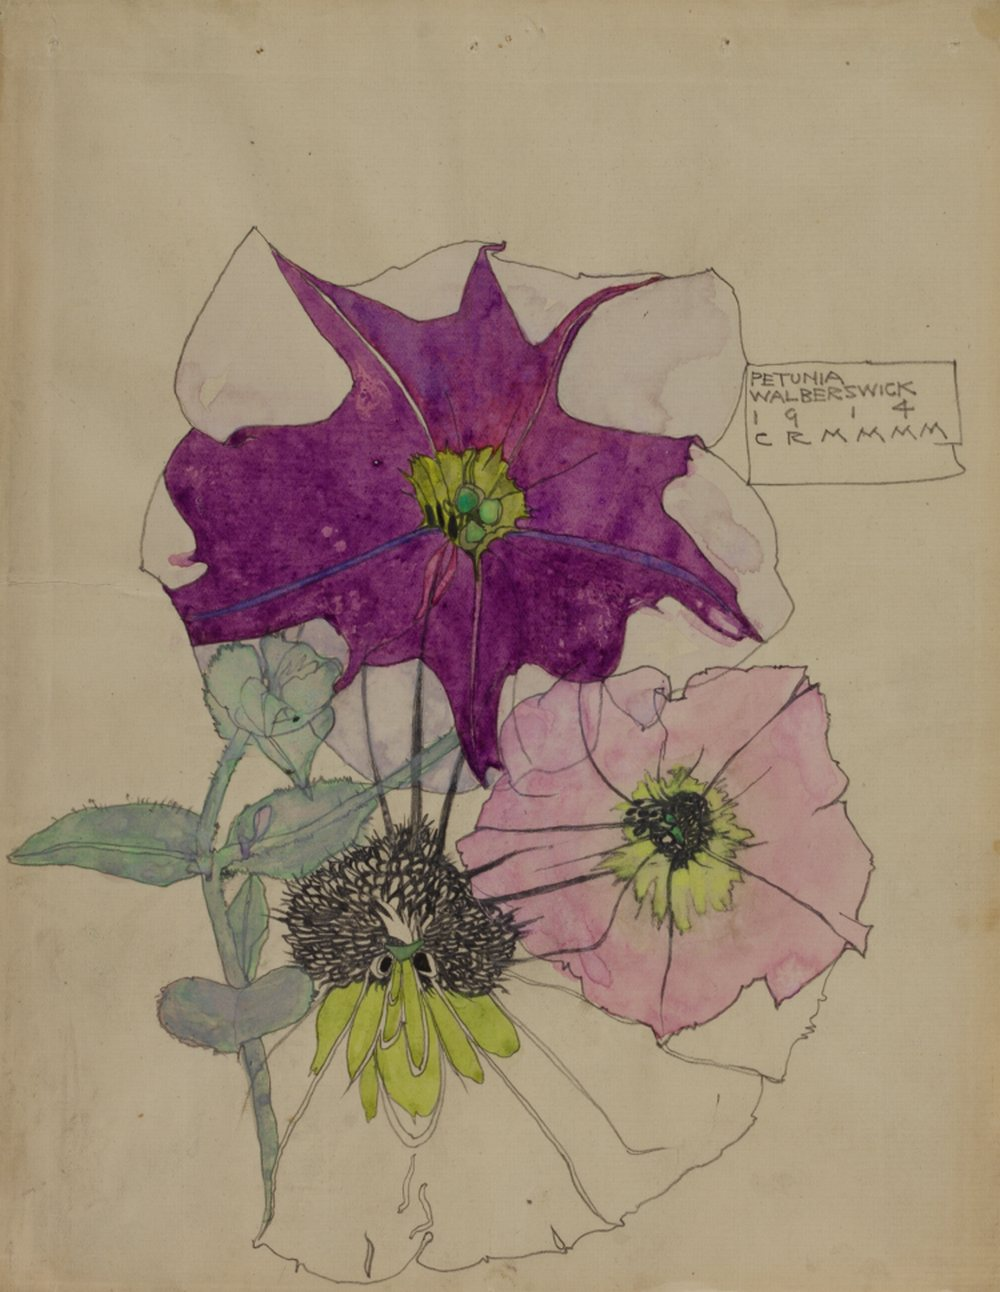 Petunia-Walberswick1914-Source-The-Hunterian-Museum-Art-Gallery-University-of-Glasgow.jpg